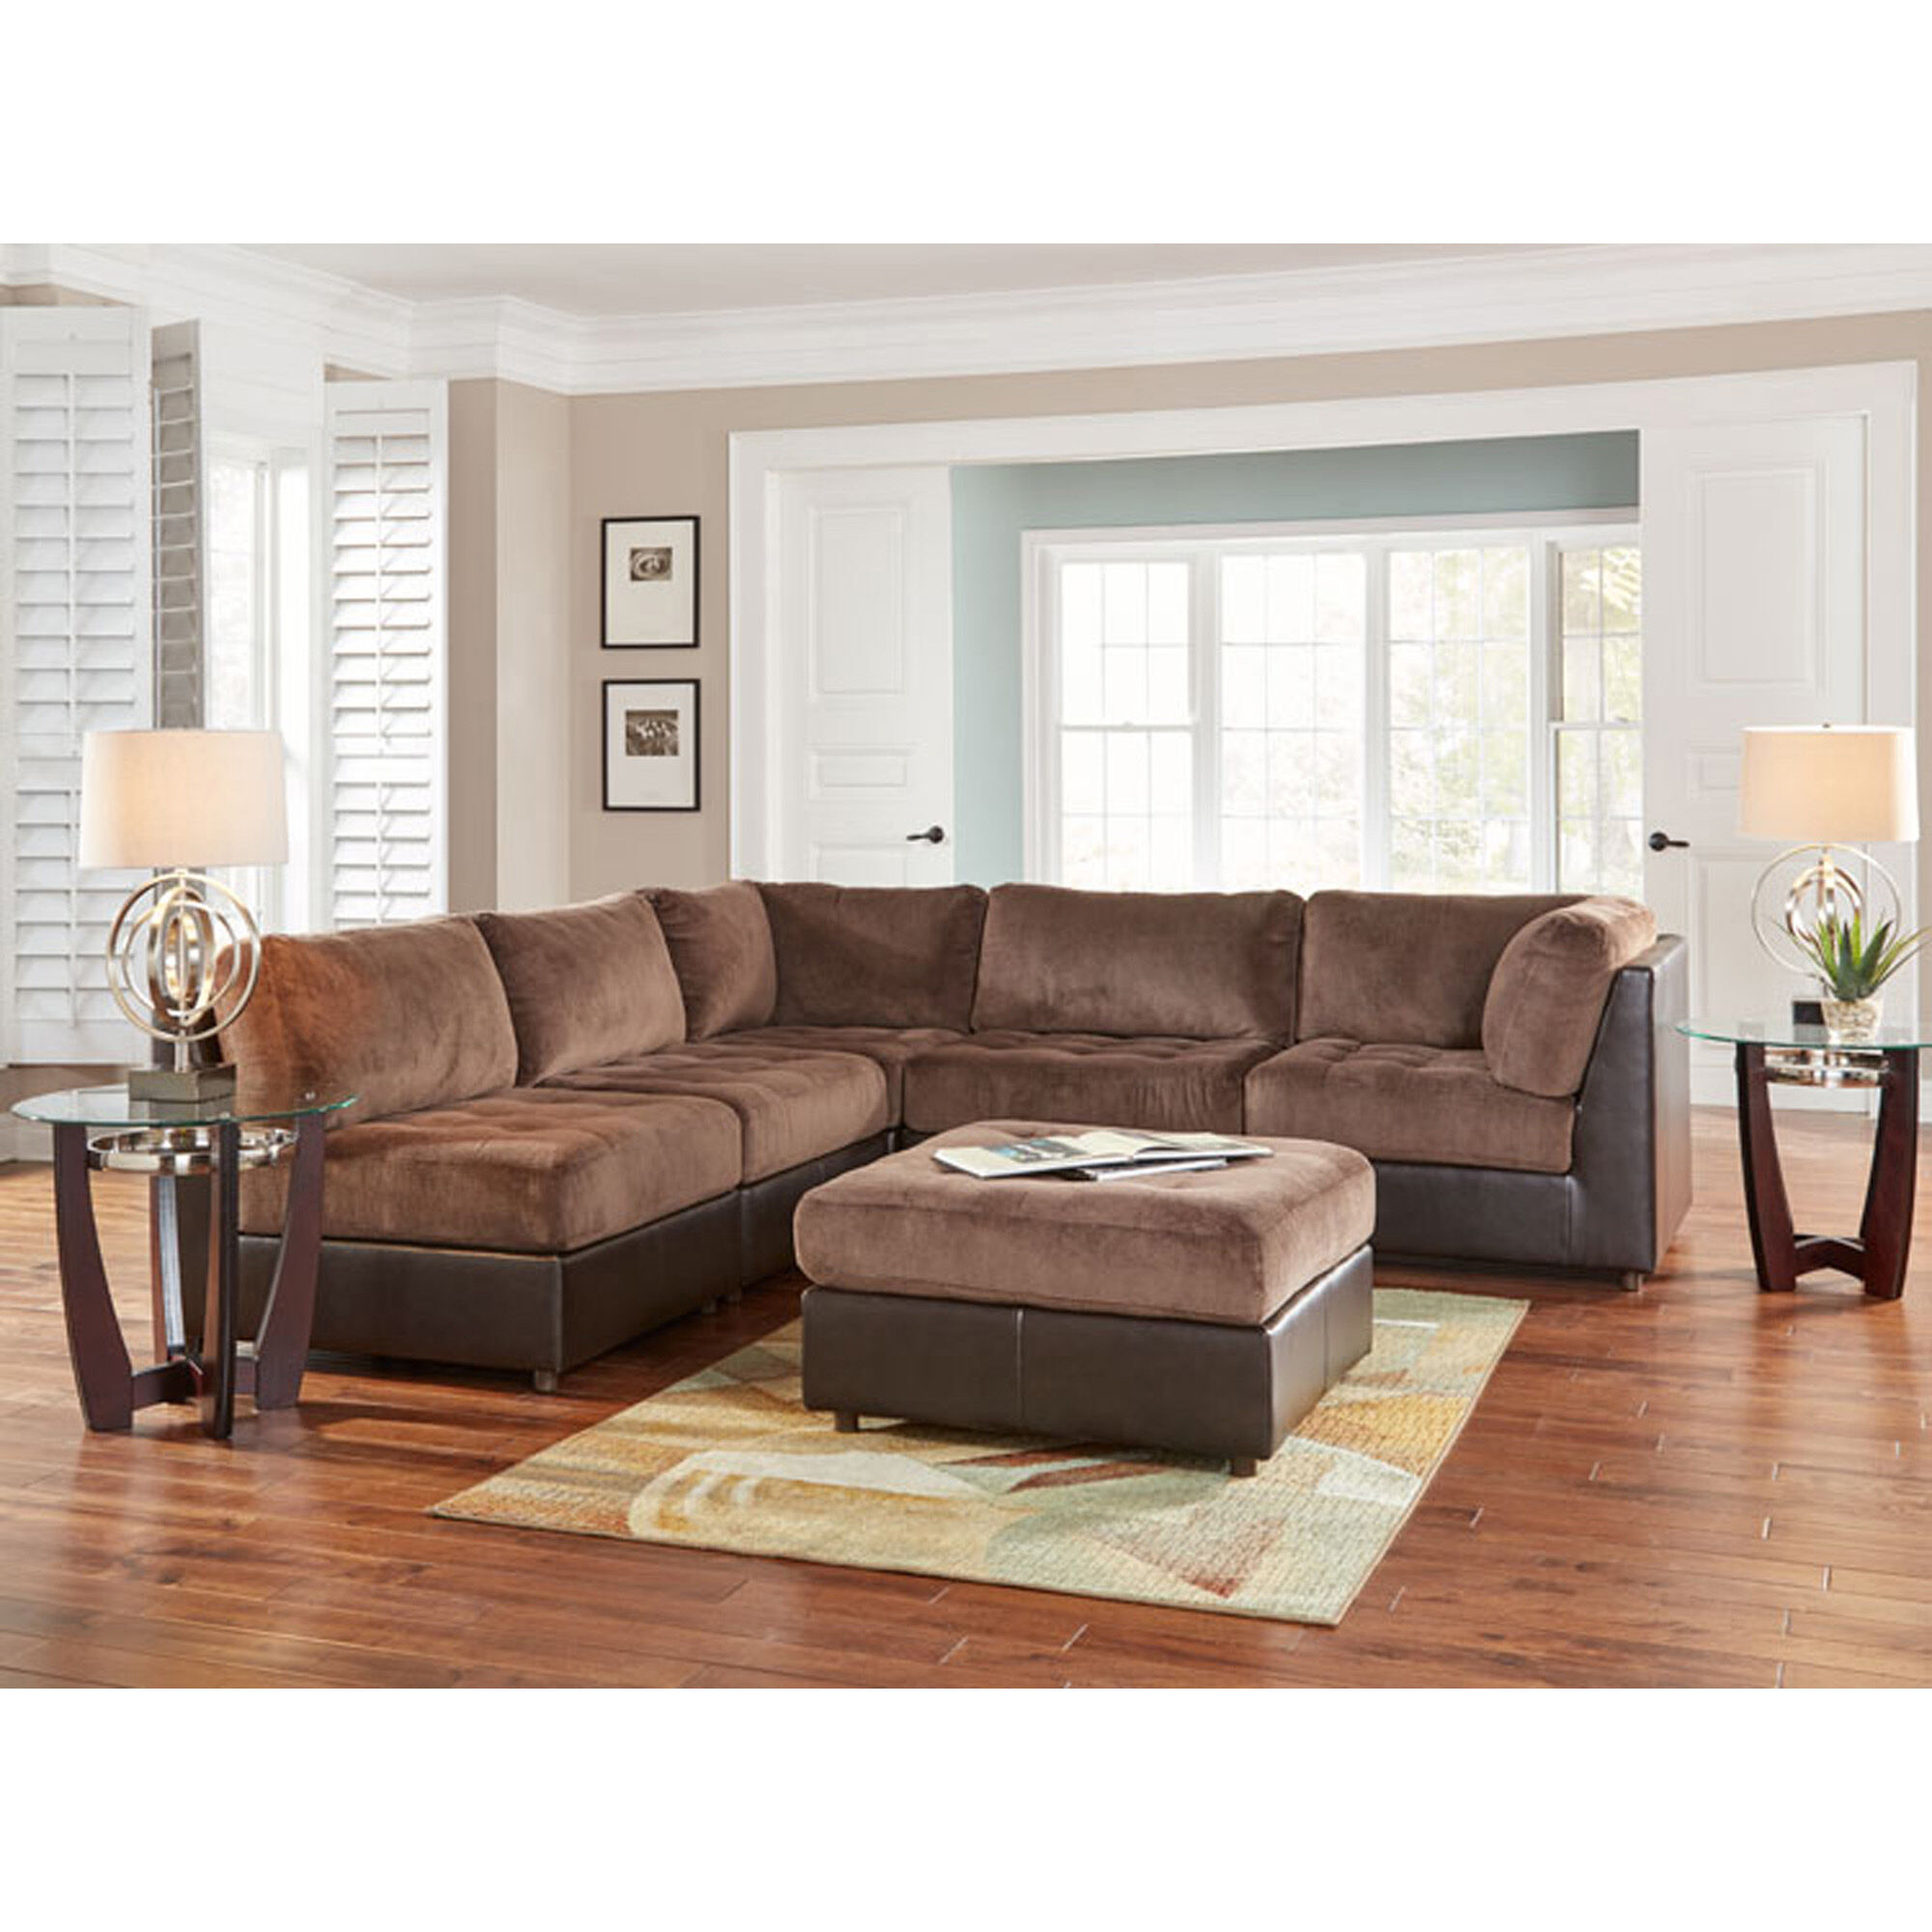 Are available to help you customize your order. Rent to Own Sectional Sofas and Couches | Aaron's